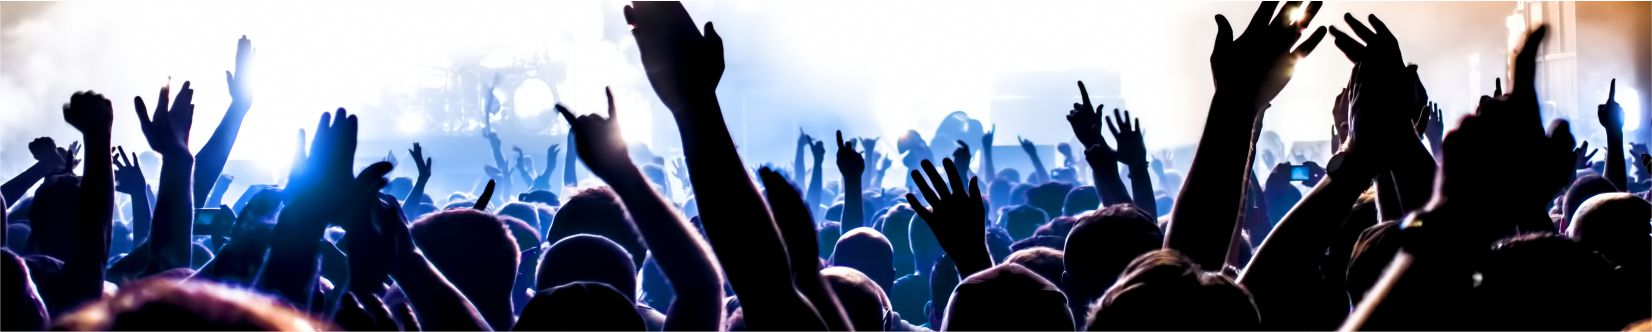 Large Group of People Enjoying a Live Music Concert